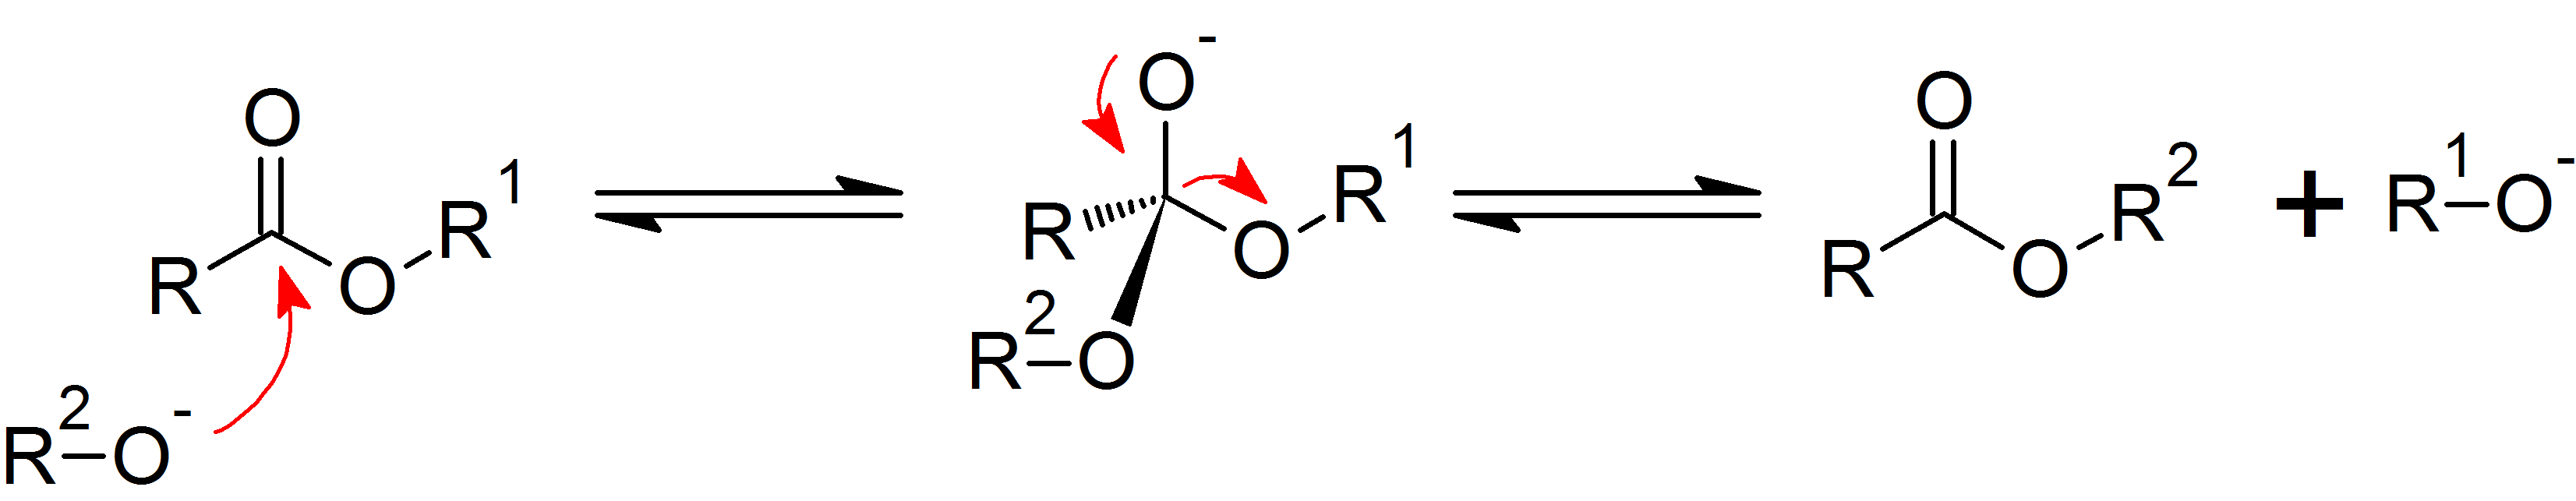 synthesis of oils phospholipids and steroids